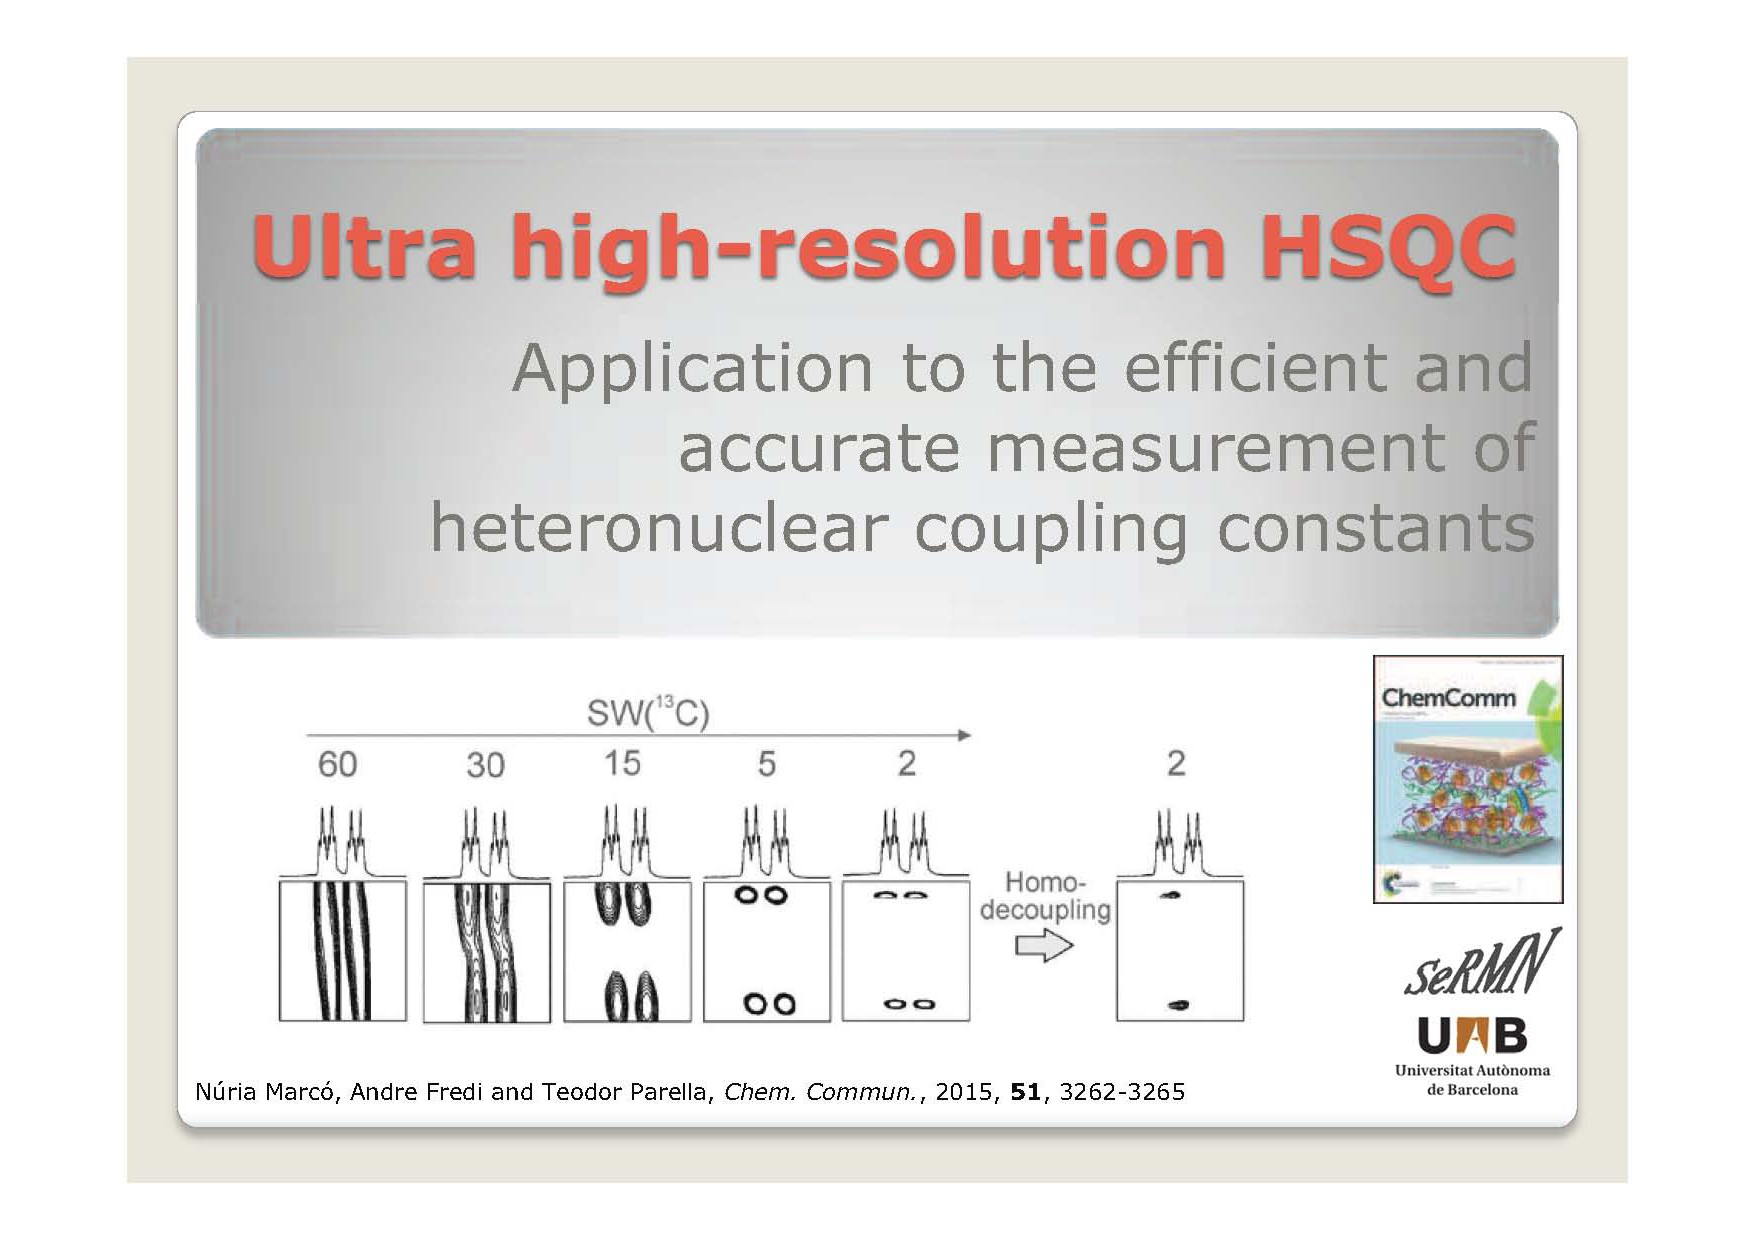 Ultra high-resolution HSQC